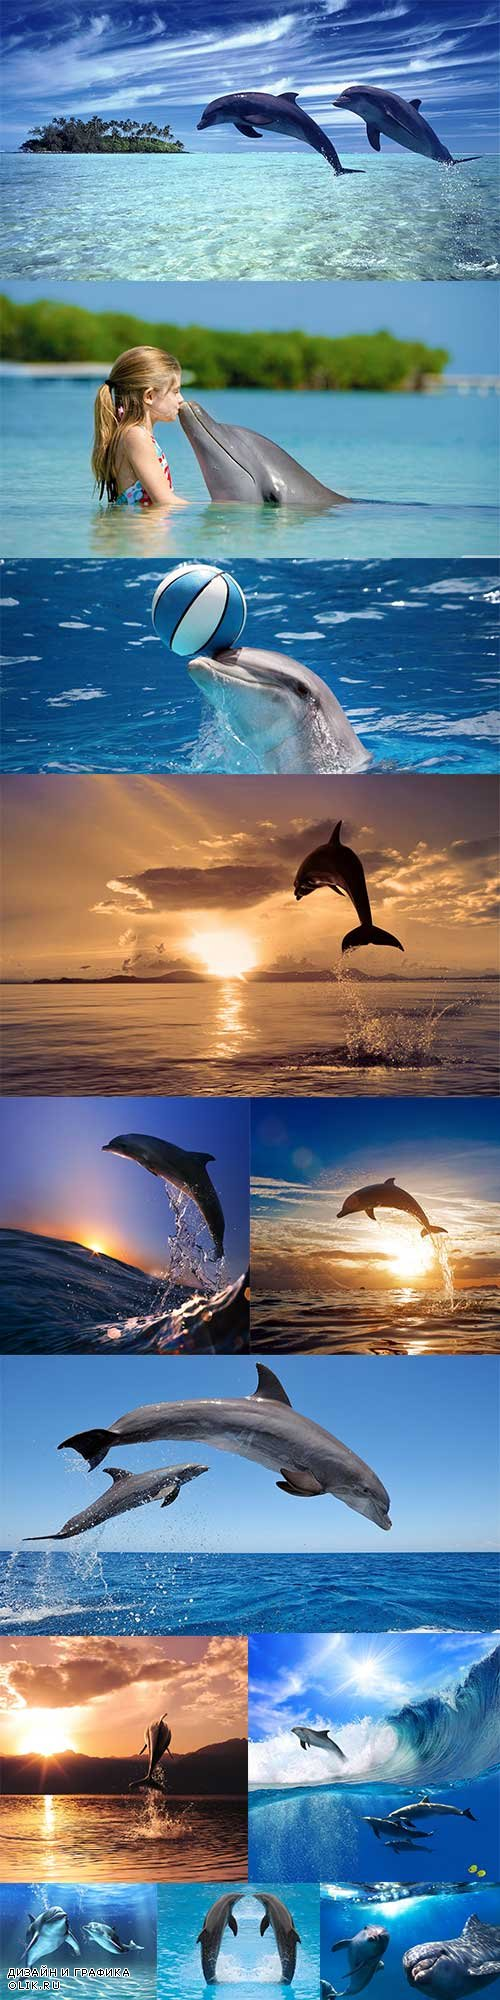 Graceful dolphins in the sea